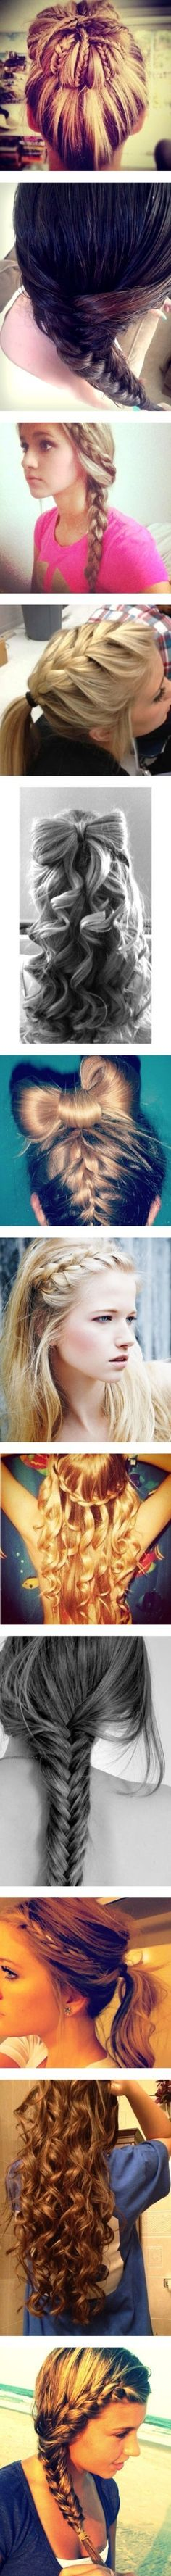 """Different Ways To Braid Your Hair """"Part 4""""   hairstyles tutorial"""